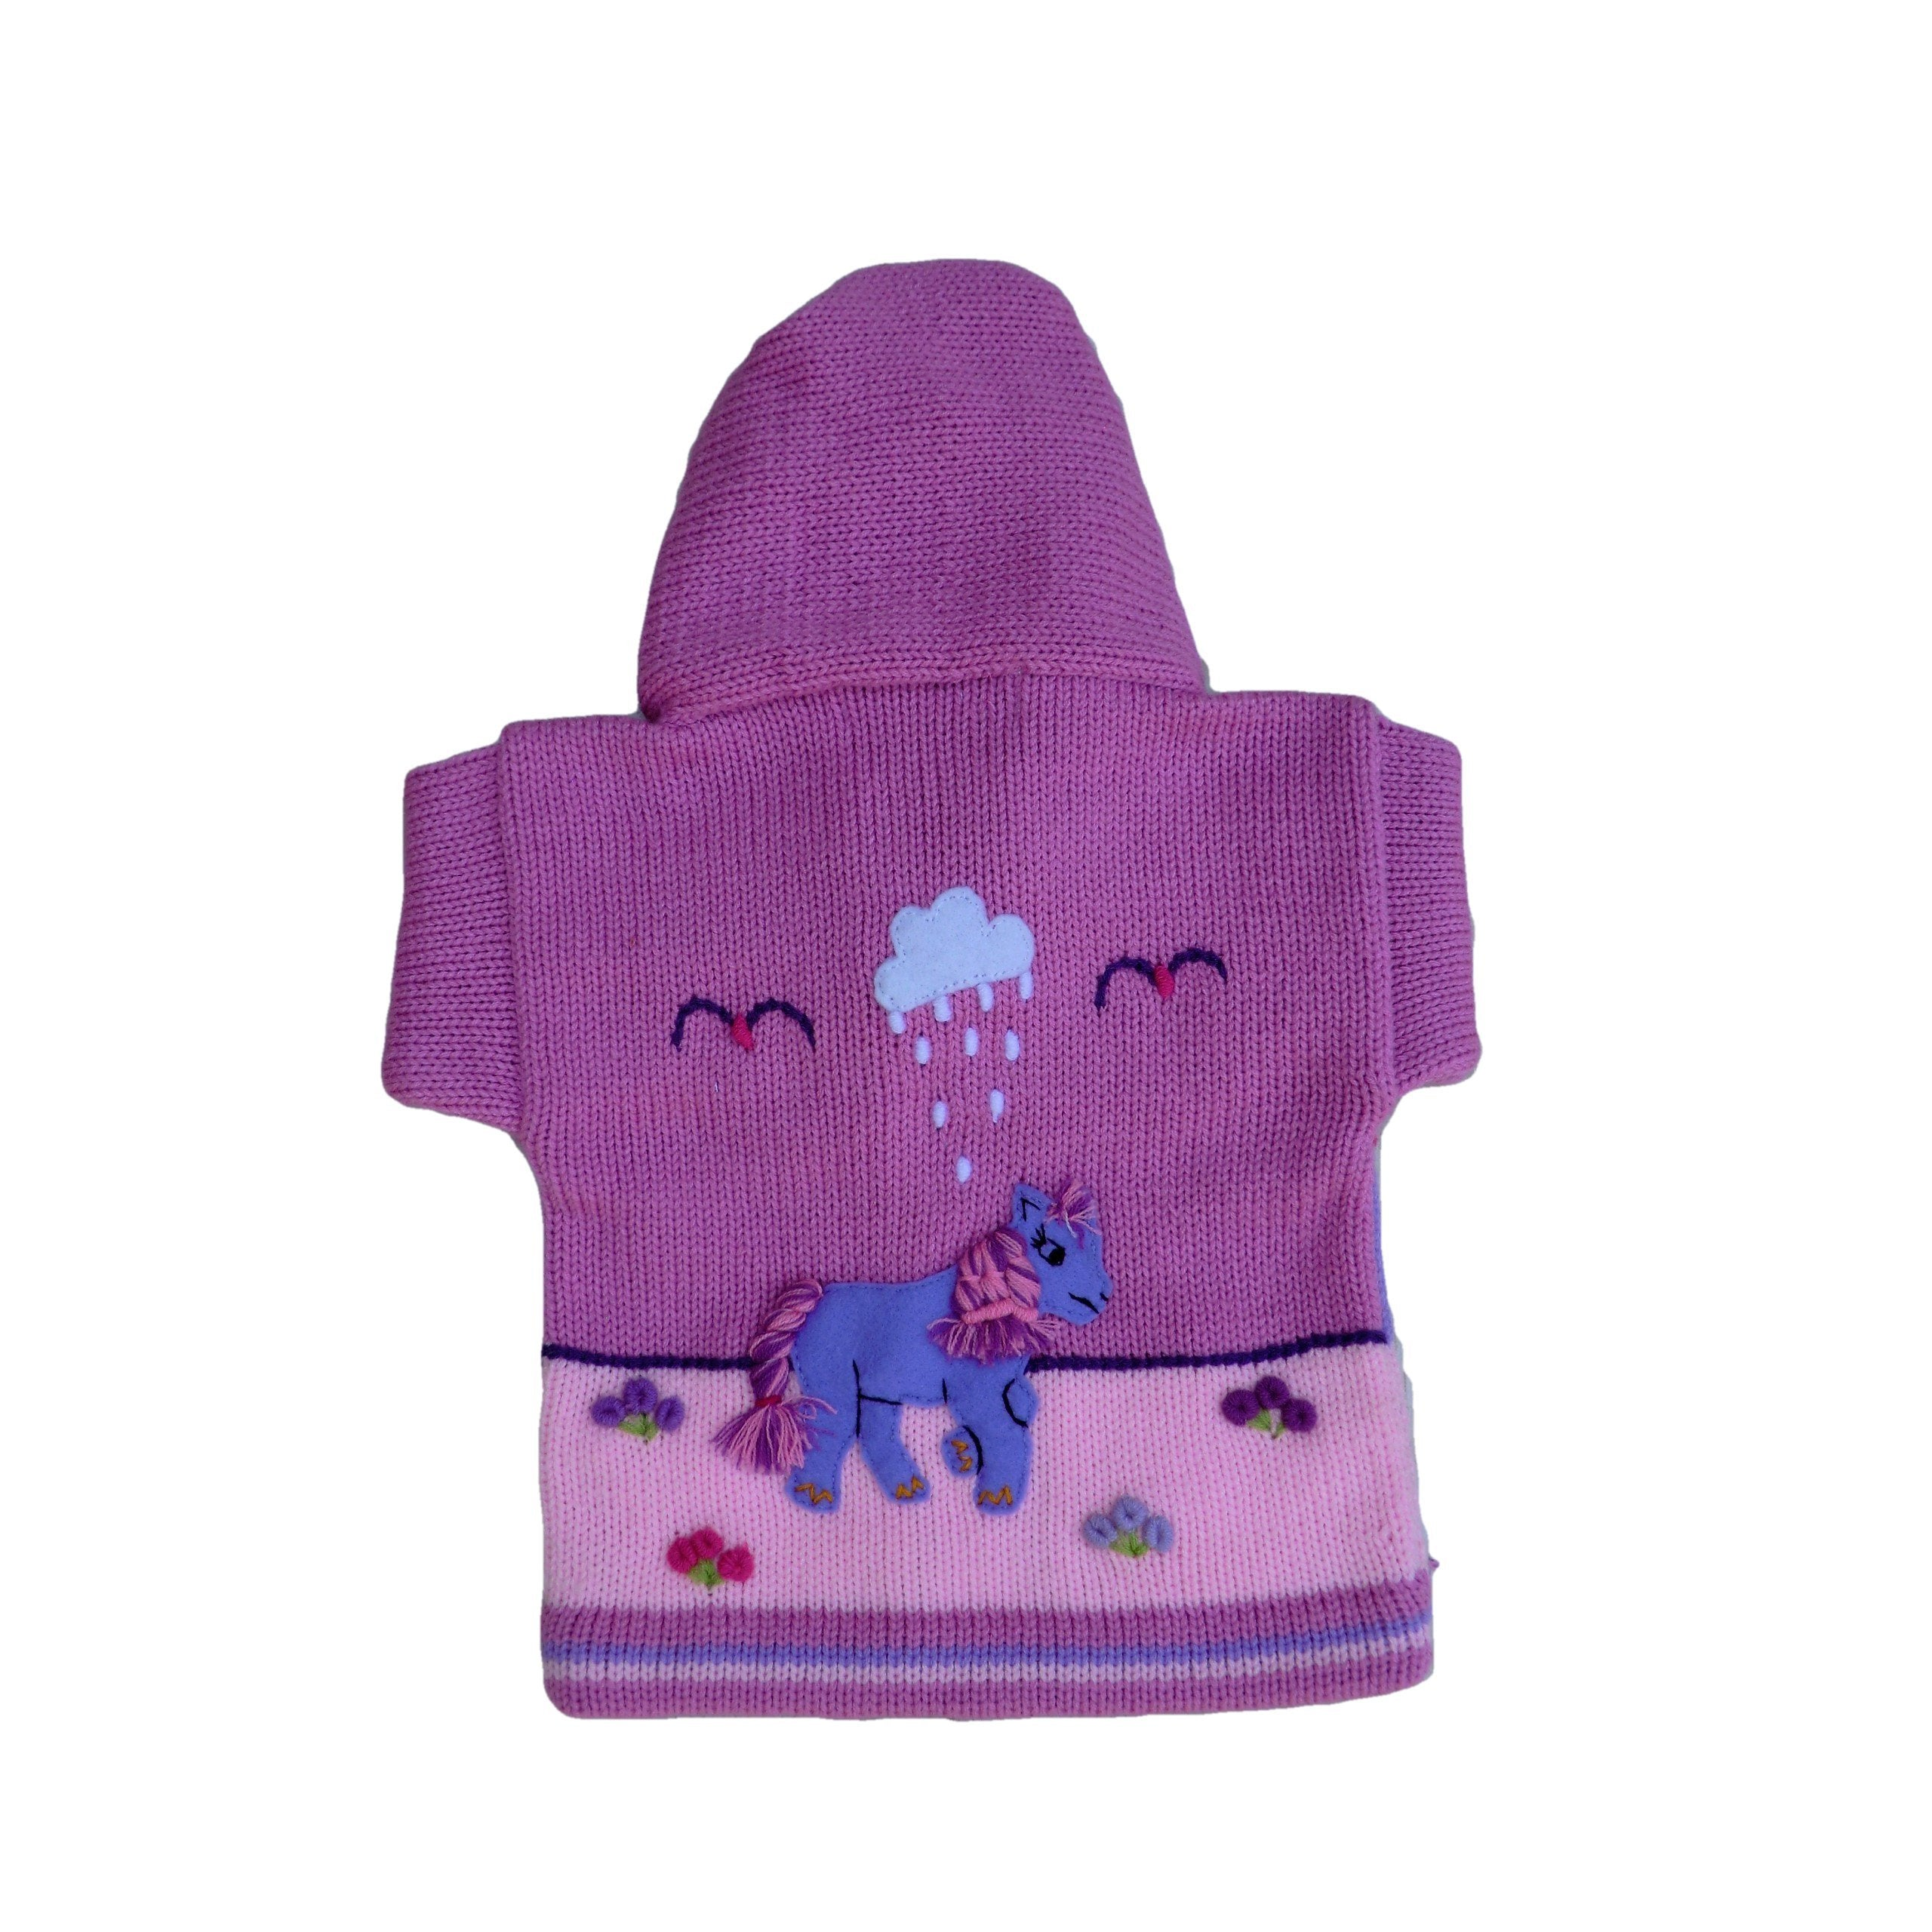 Children's Pink Cardigan - Pony - Matico